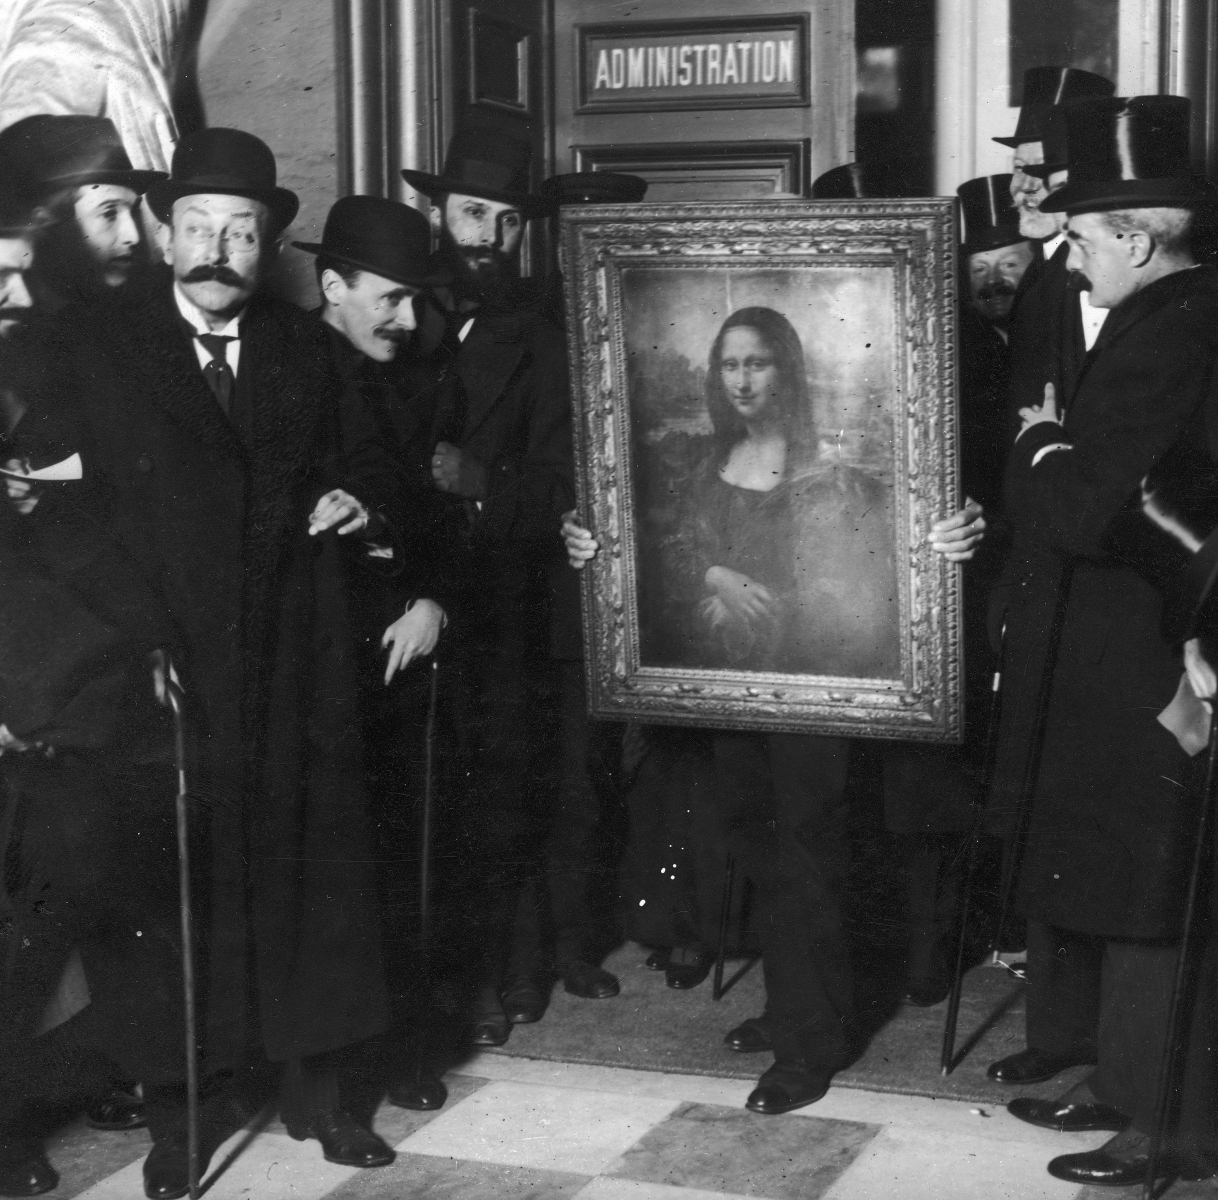 Officials gather around Leonardo da Vinci's 'Mona Lisa' (aka 'La Gioconda' or 'La Joconde') upon its return to Paris, 4th January 1914. It was stolen from the Musee du Louvre by Vincenzo Peruggia in 1911, and has only just been recovered. (Paul Thompson/FPG/Archive Photos/Getty Images)